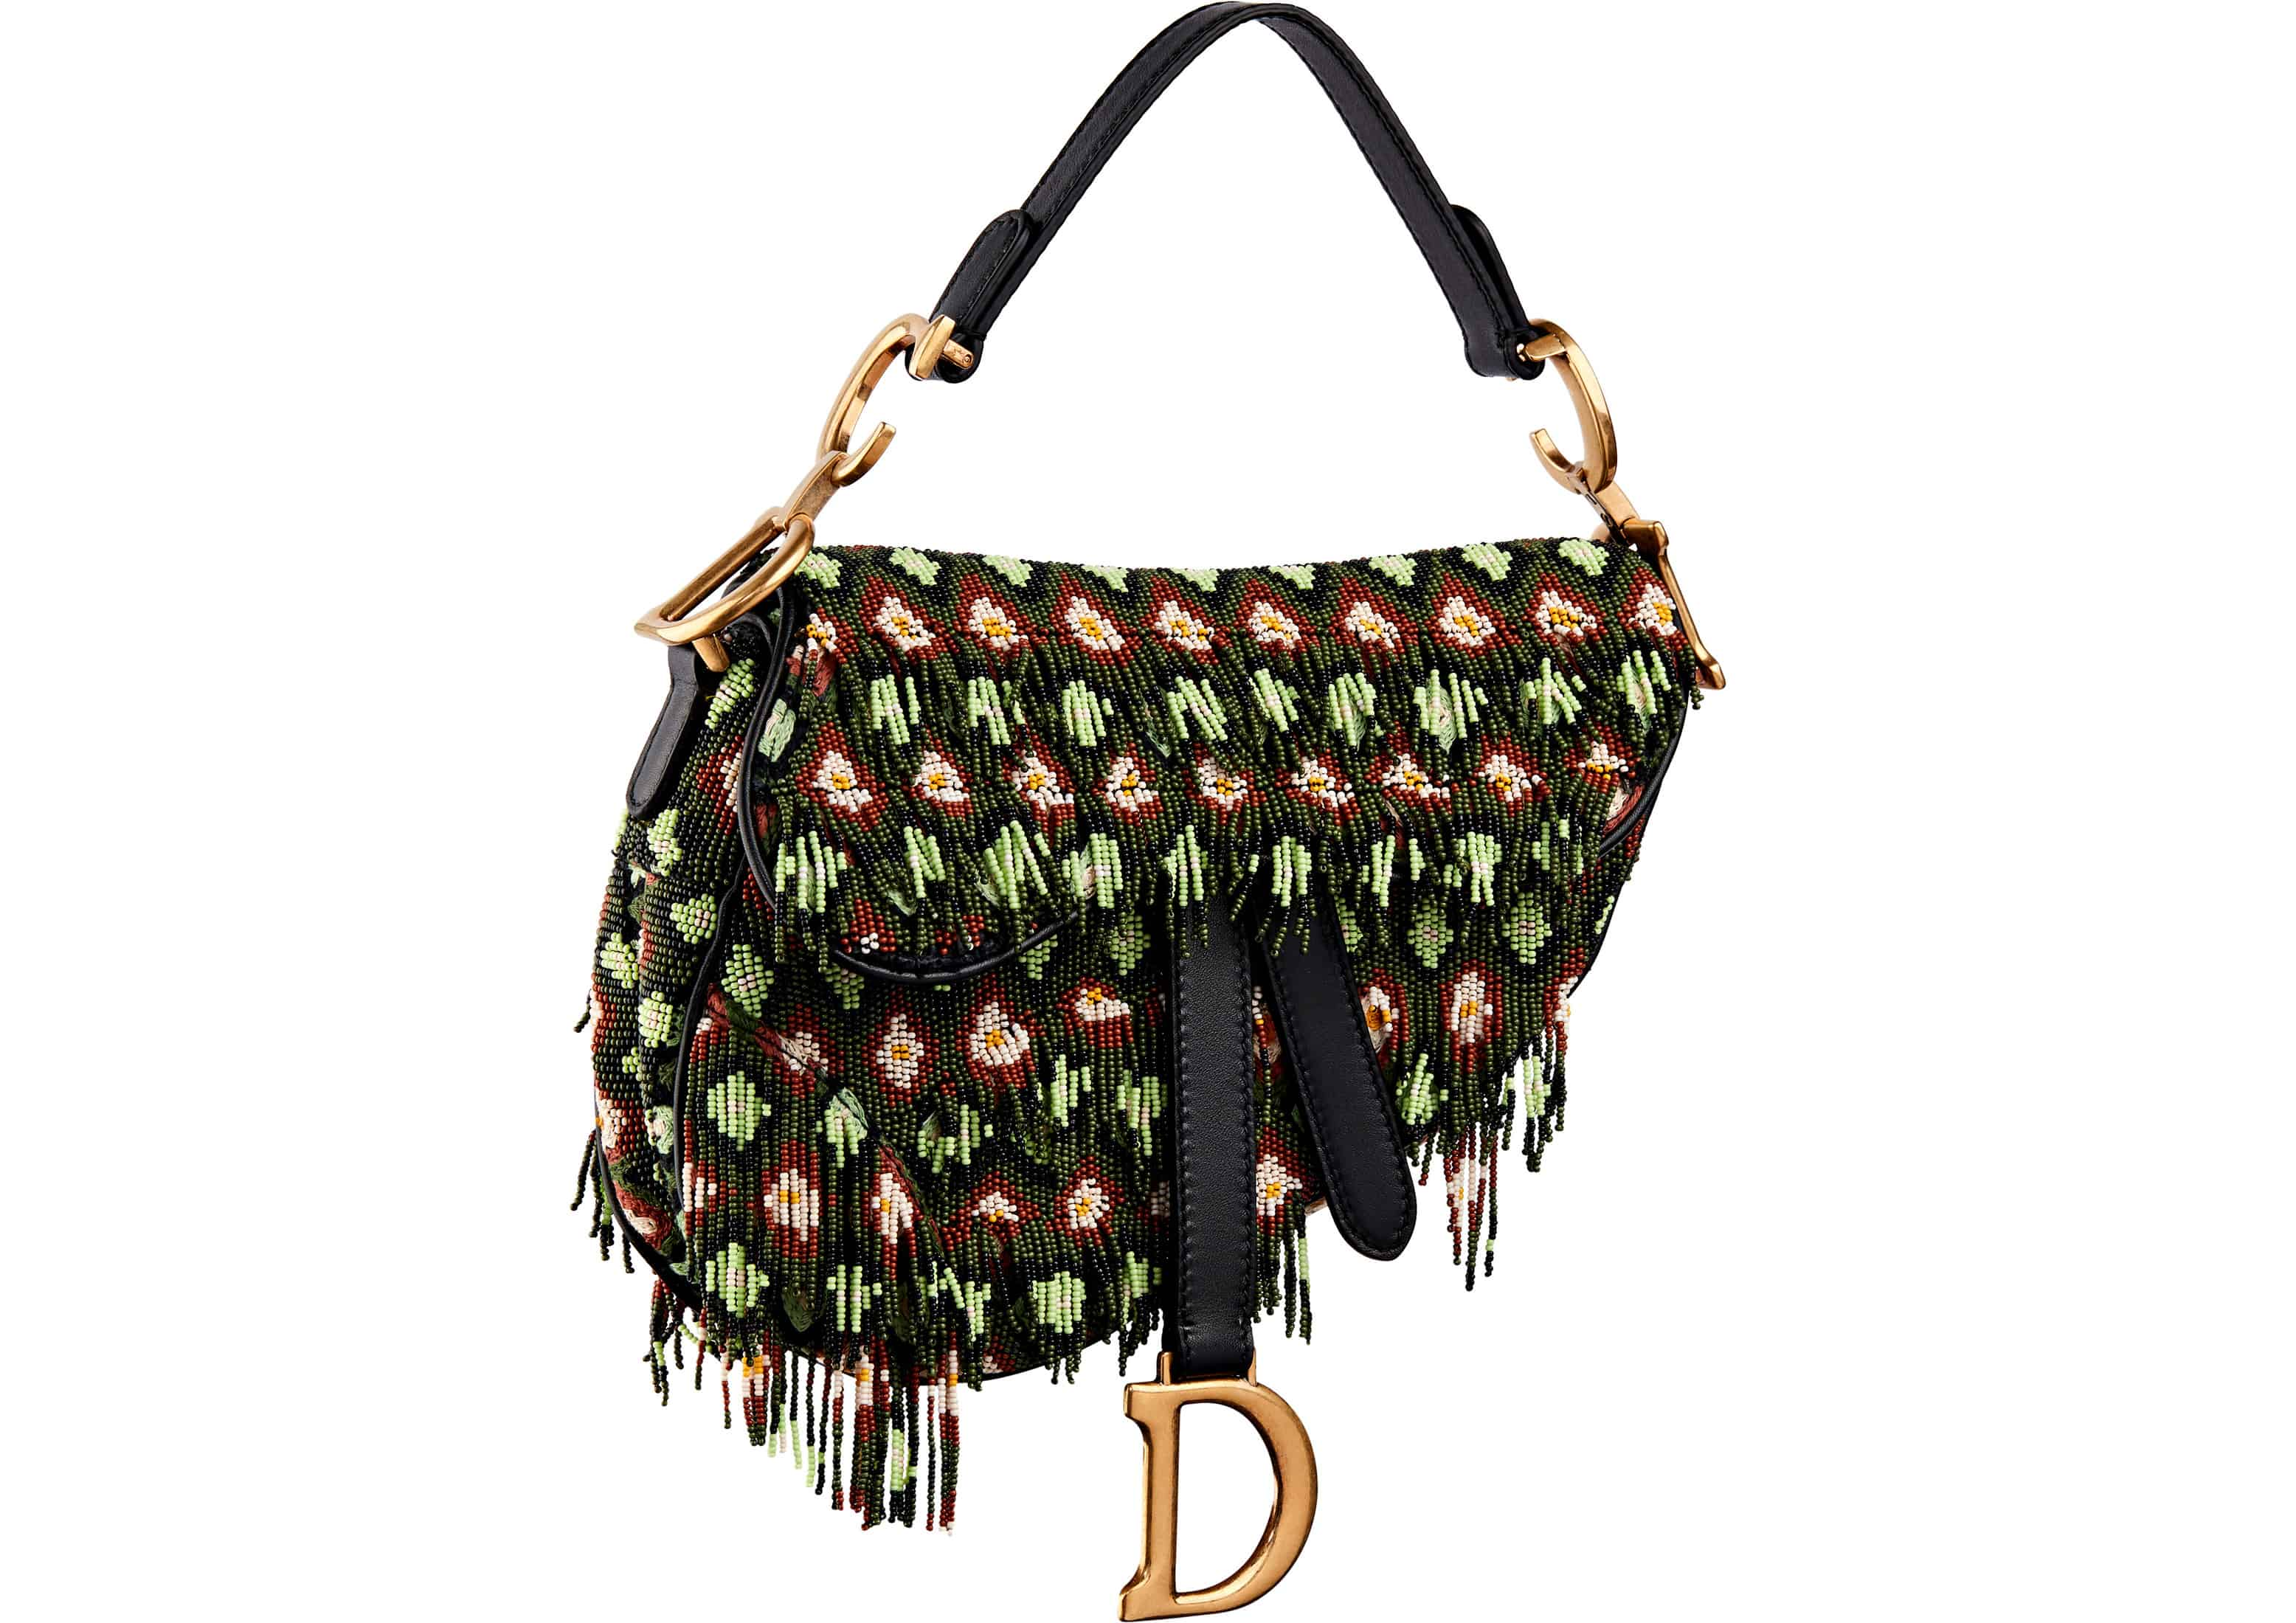 f16bf7f11a0b1 The New Dior Saddle Bag Is Finally in Stores — Dior Officially ...